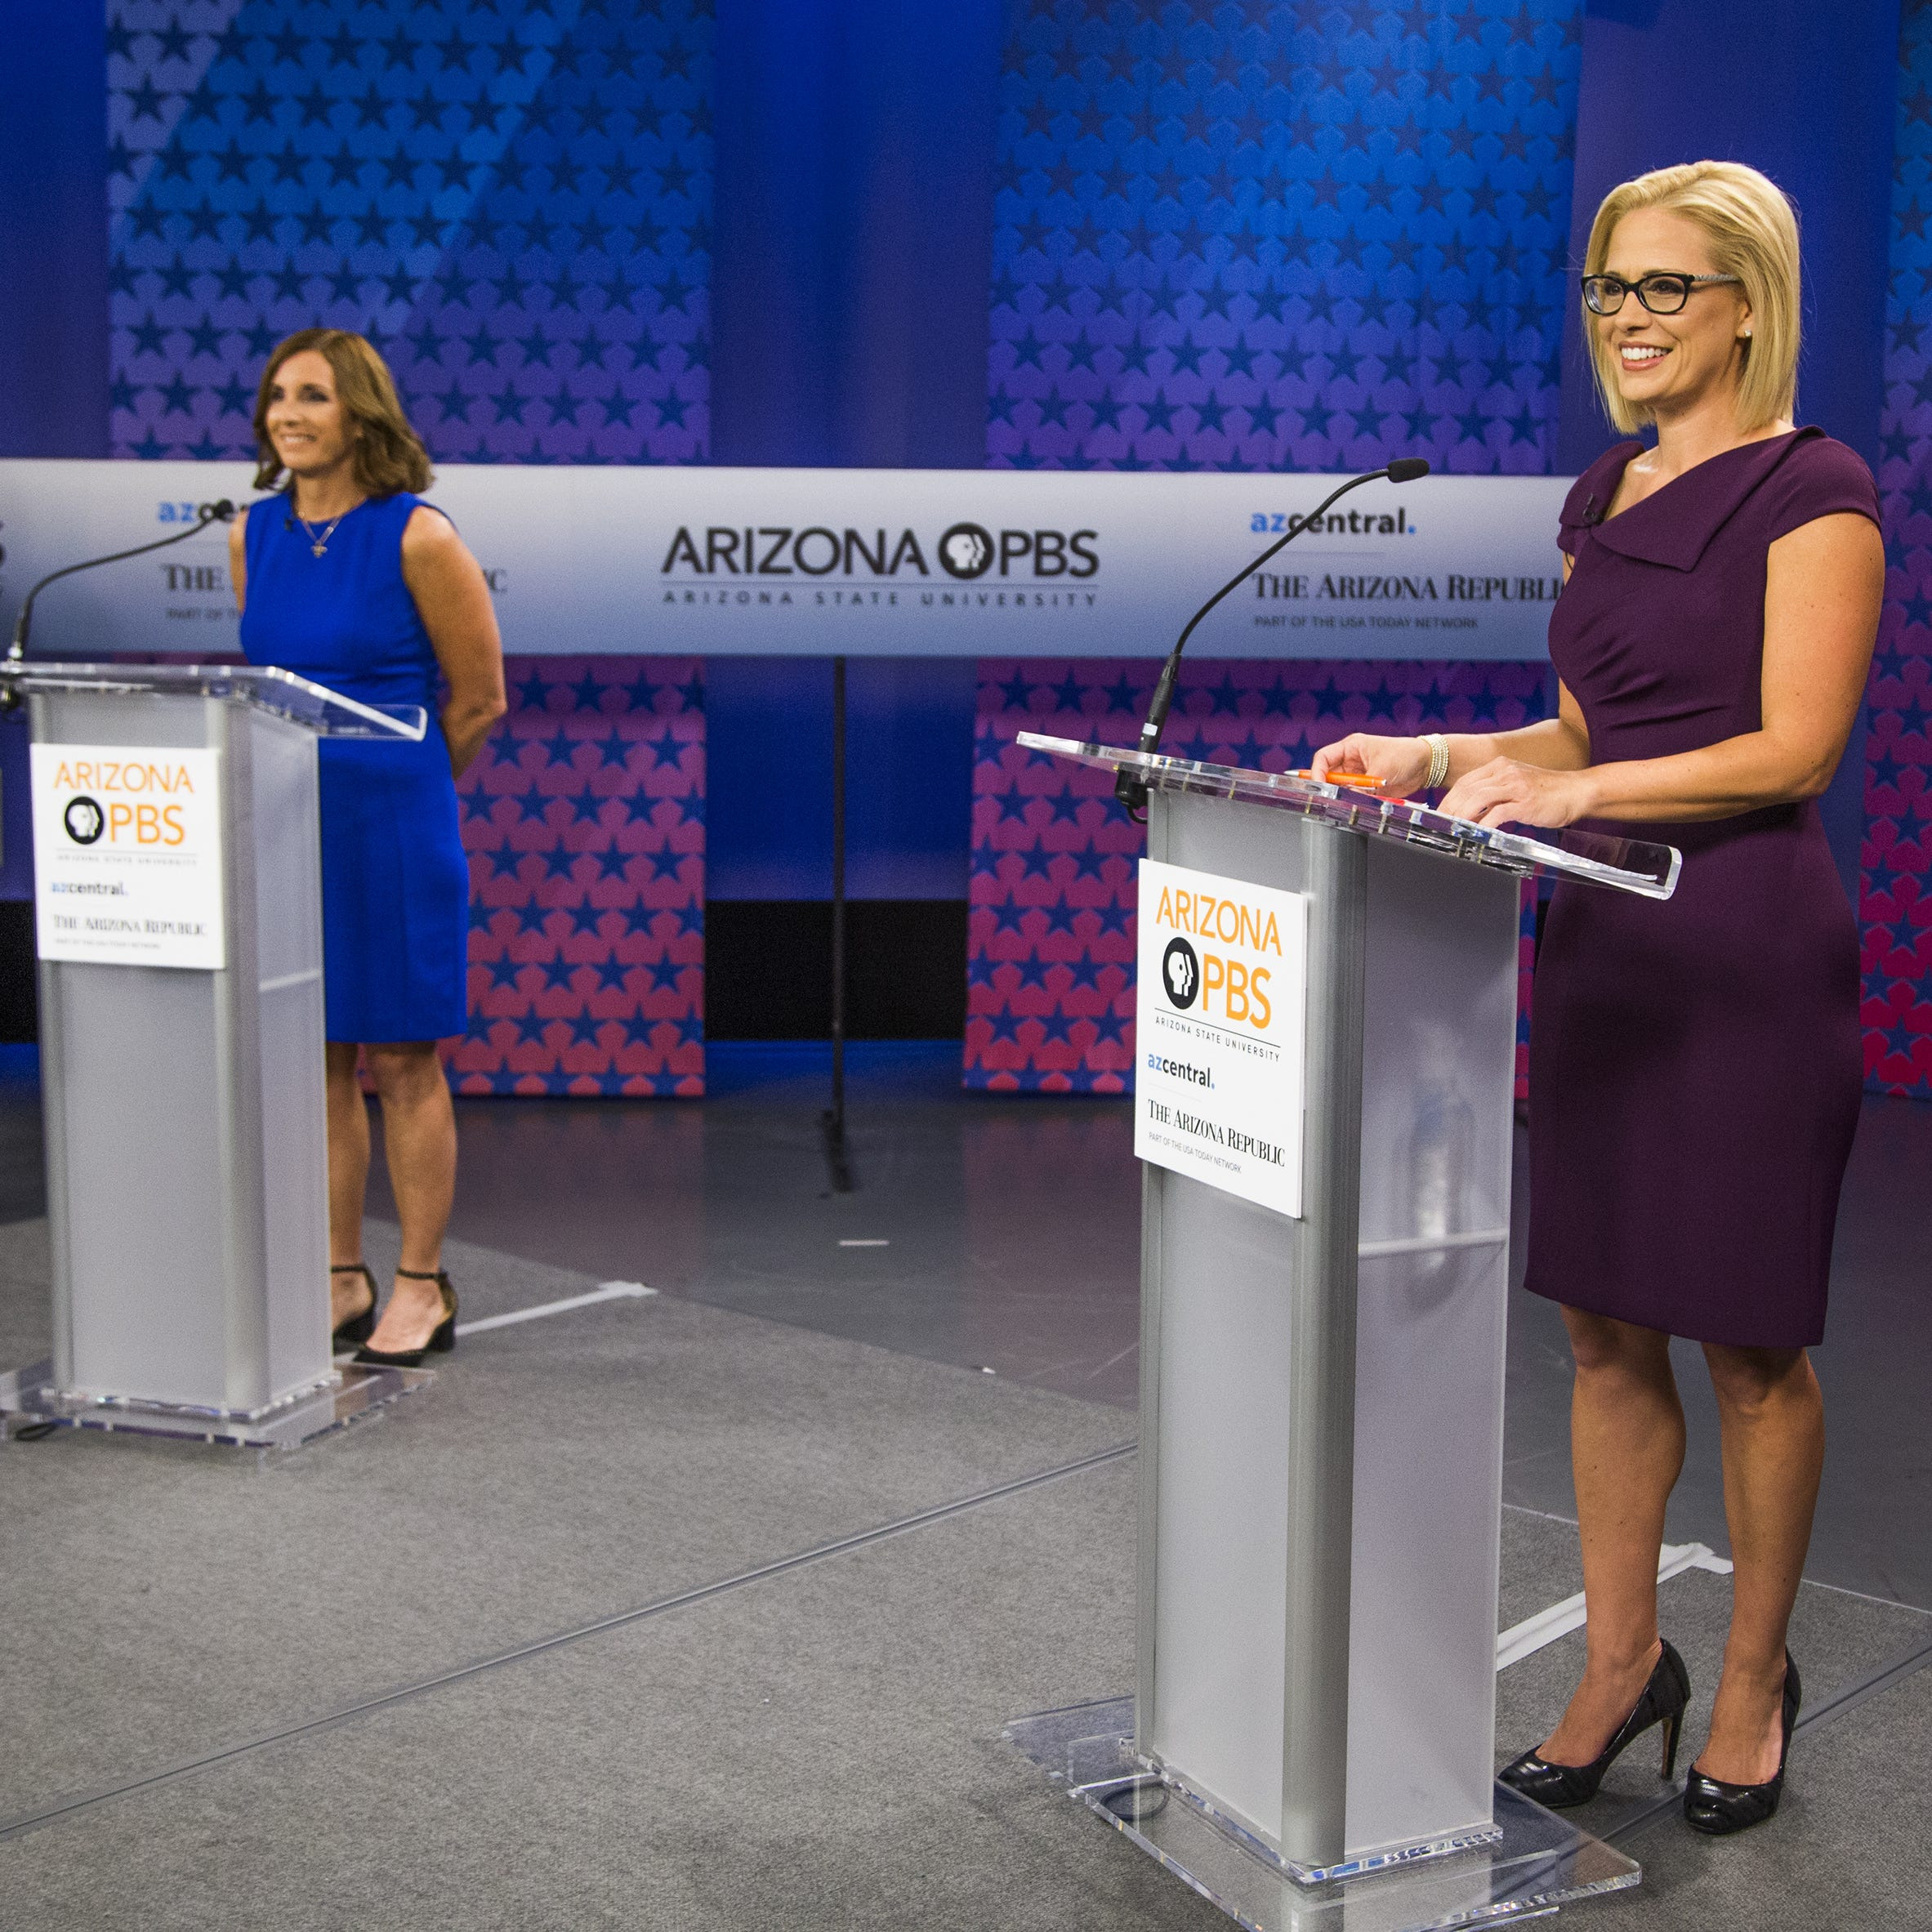 McSally and Sinema debate in U.S. Senate race for Arizona seat